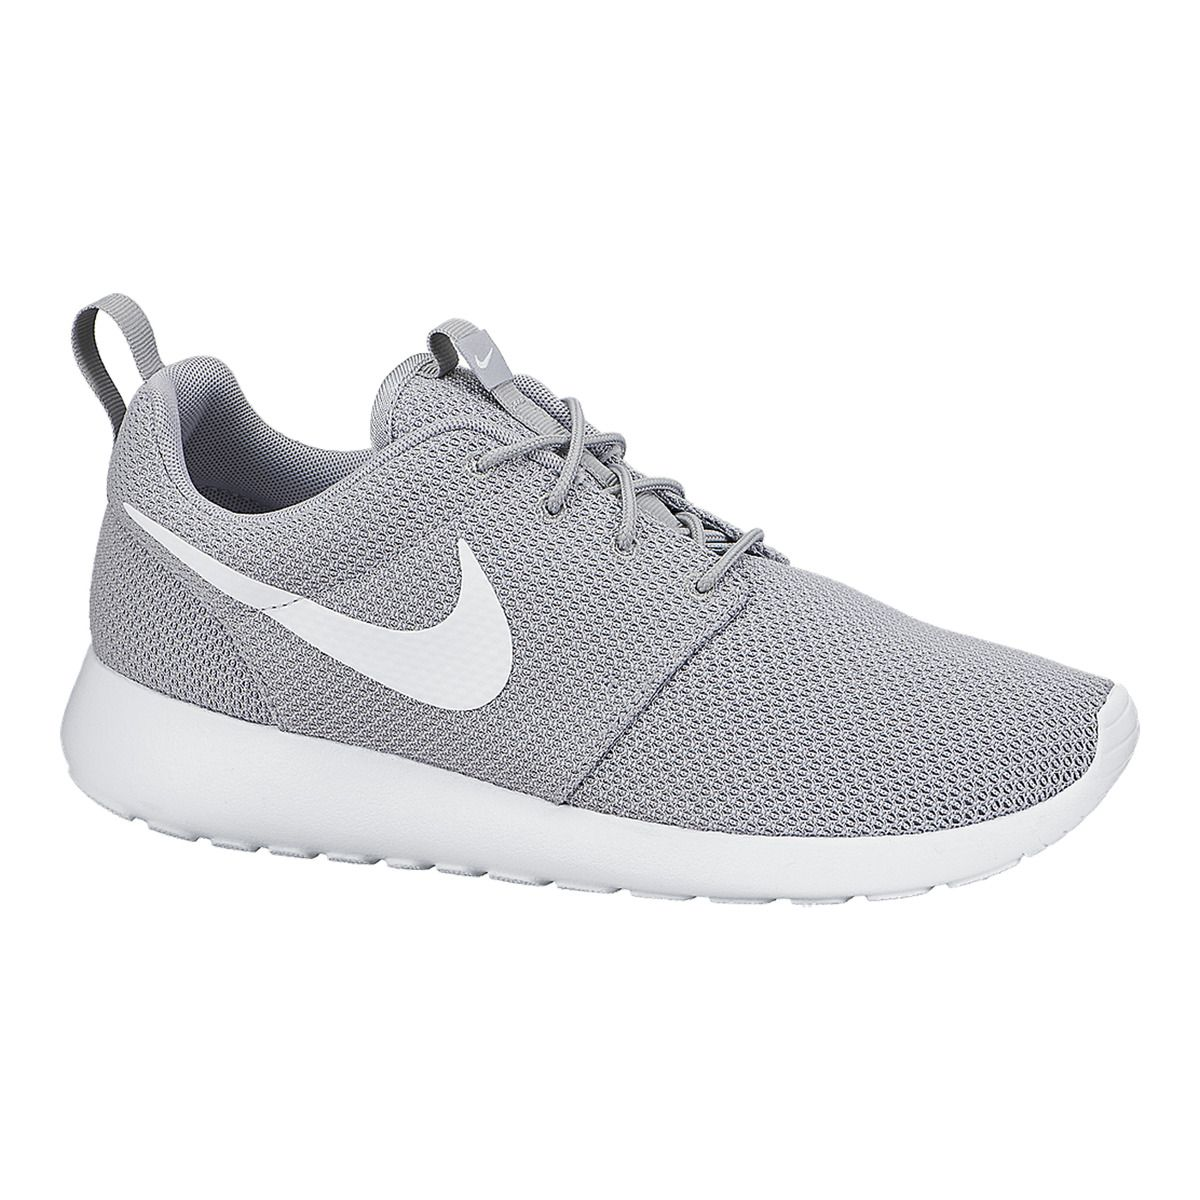 differently c2fcd 37e3b Zapatillas casual de hombre Roshe One Nike